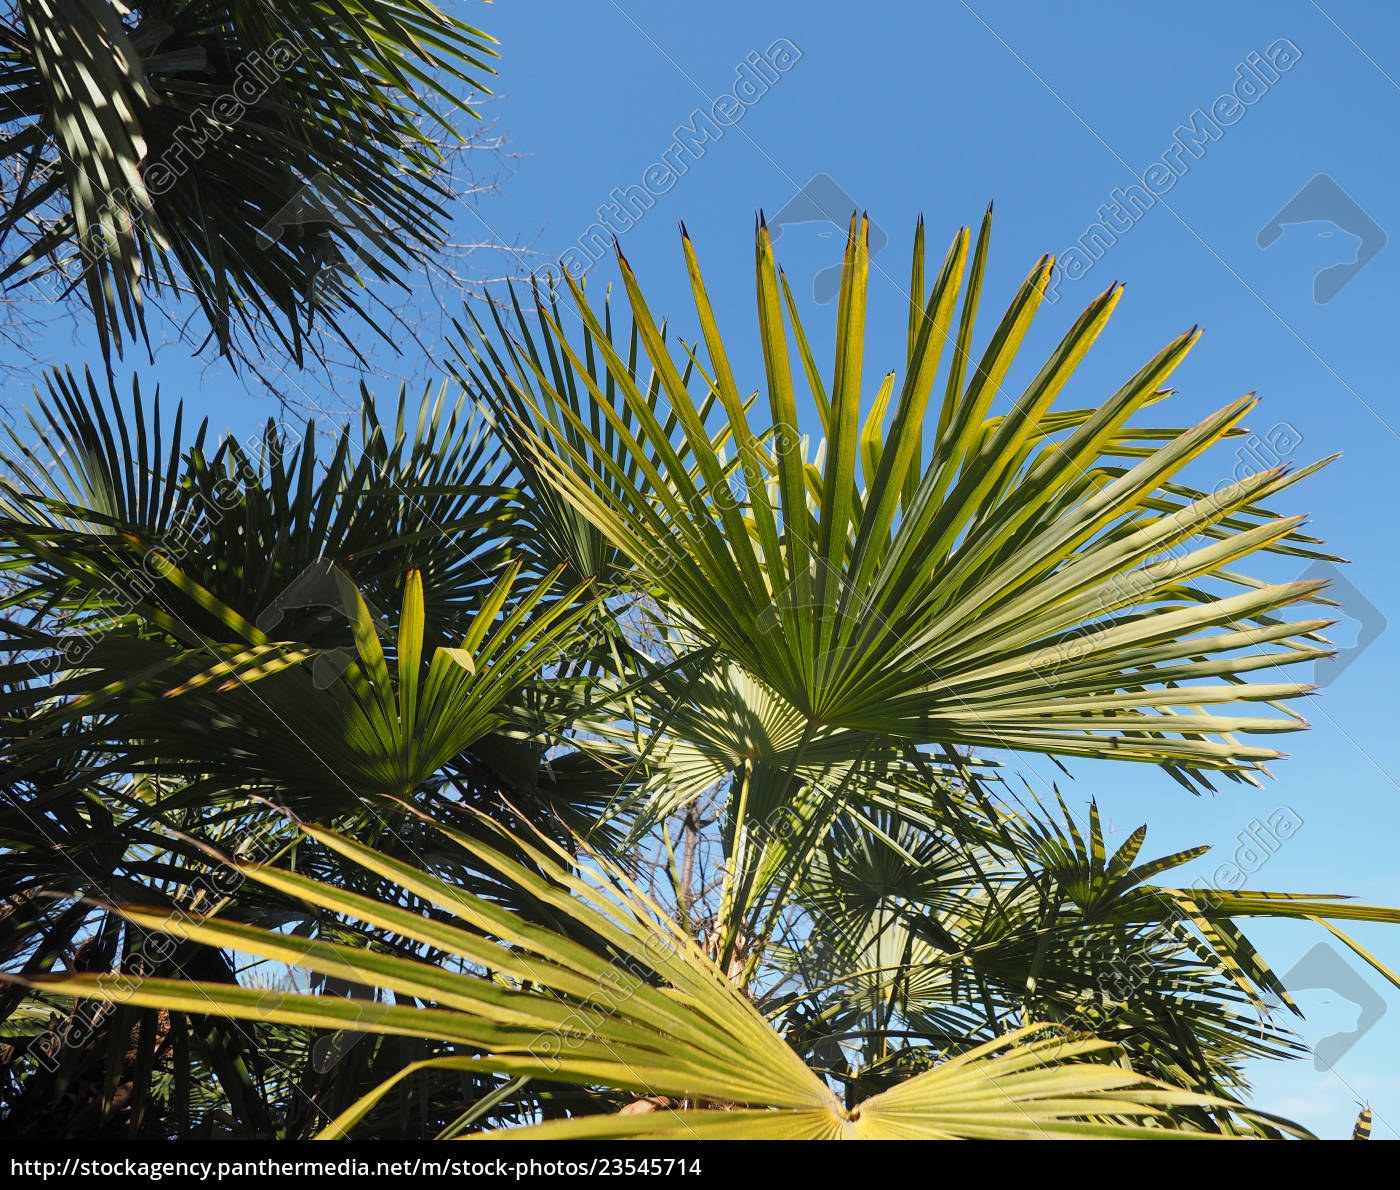 Palm Tree Leaves Background Stock Image 23545714 Panthermedia Stock Agency